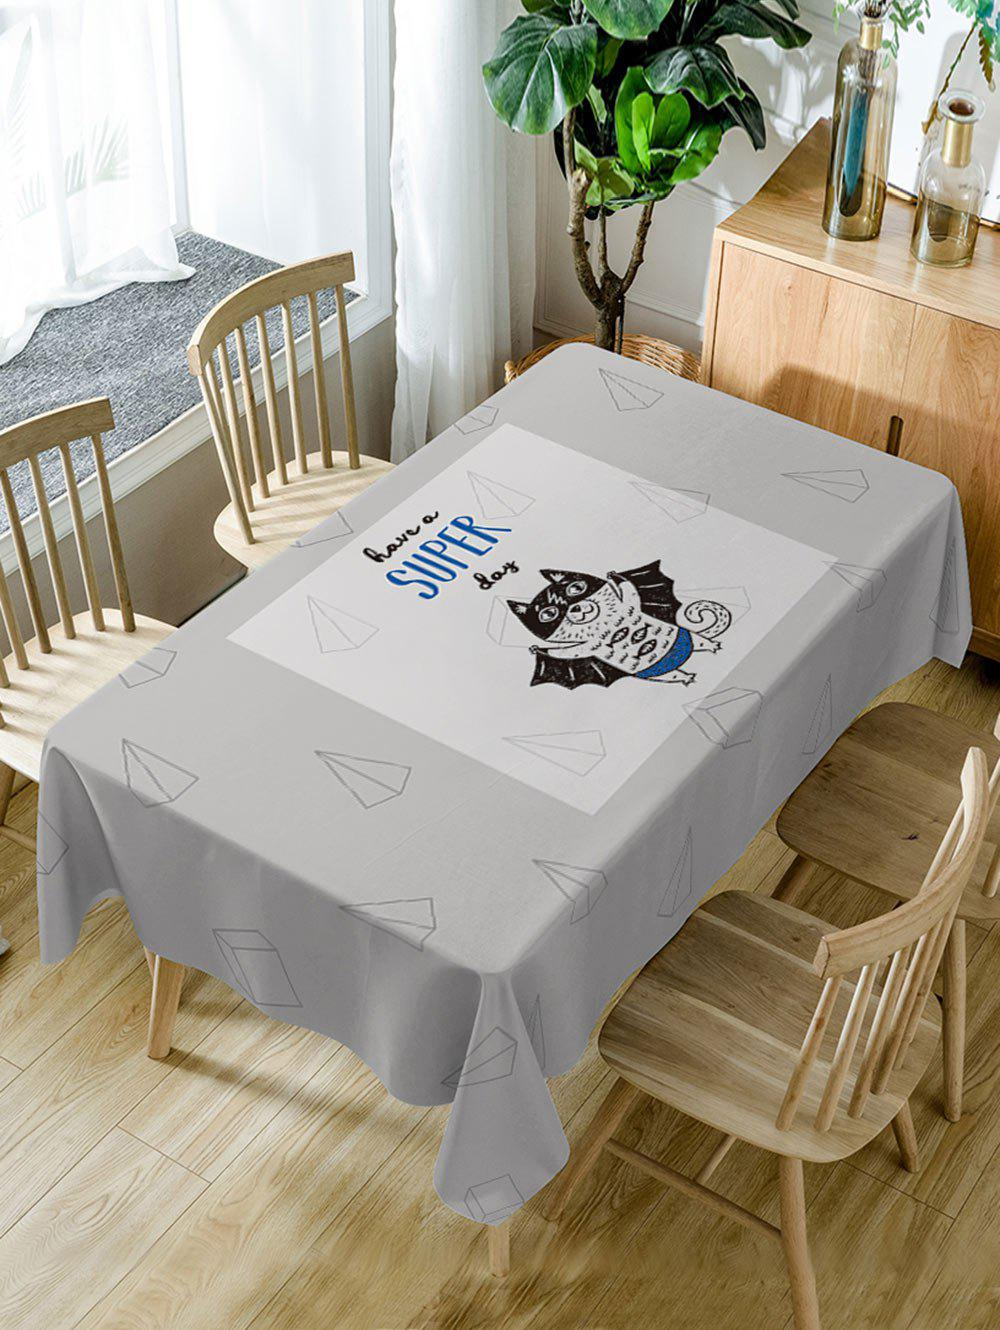 Outfits A Flying Cat Letter Print Fabric Table Cloth